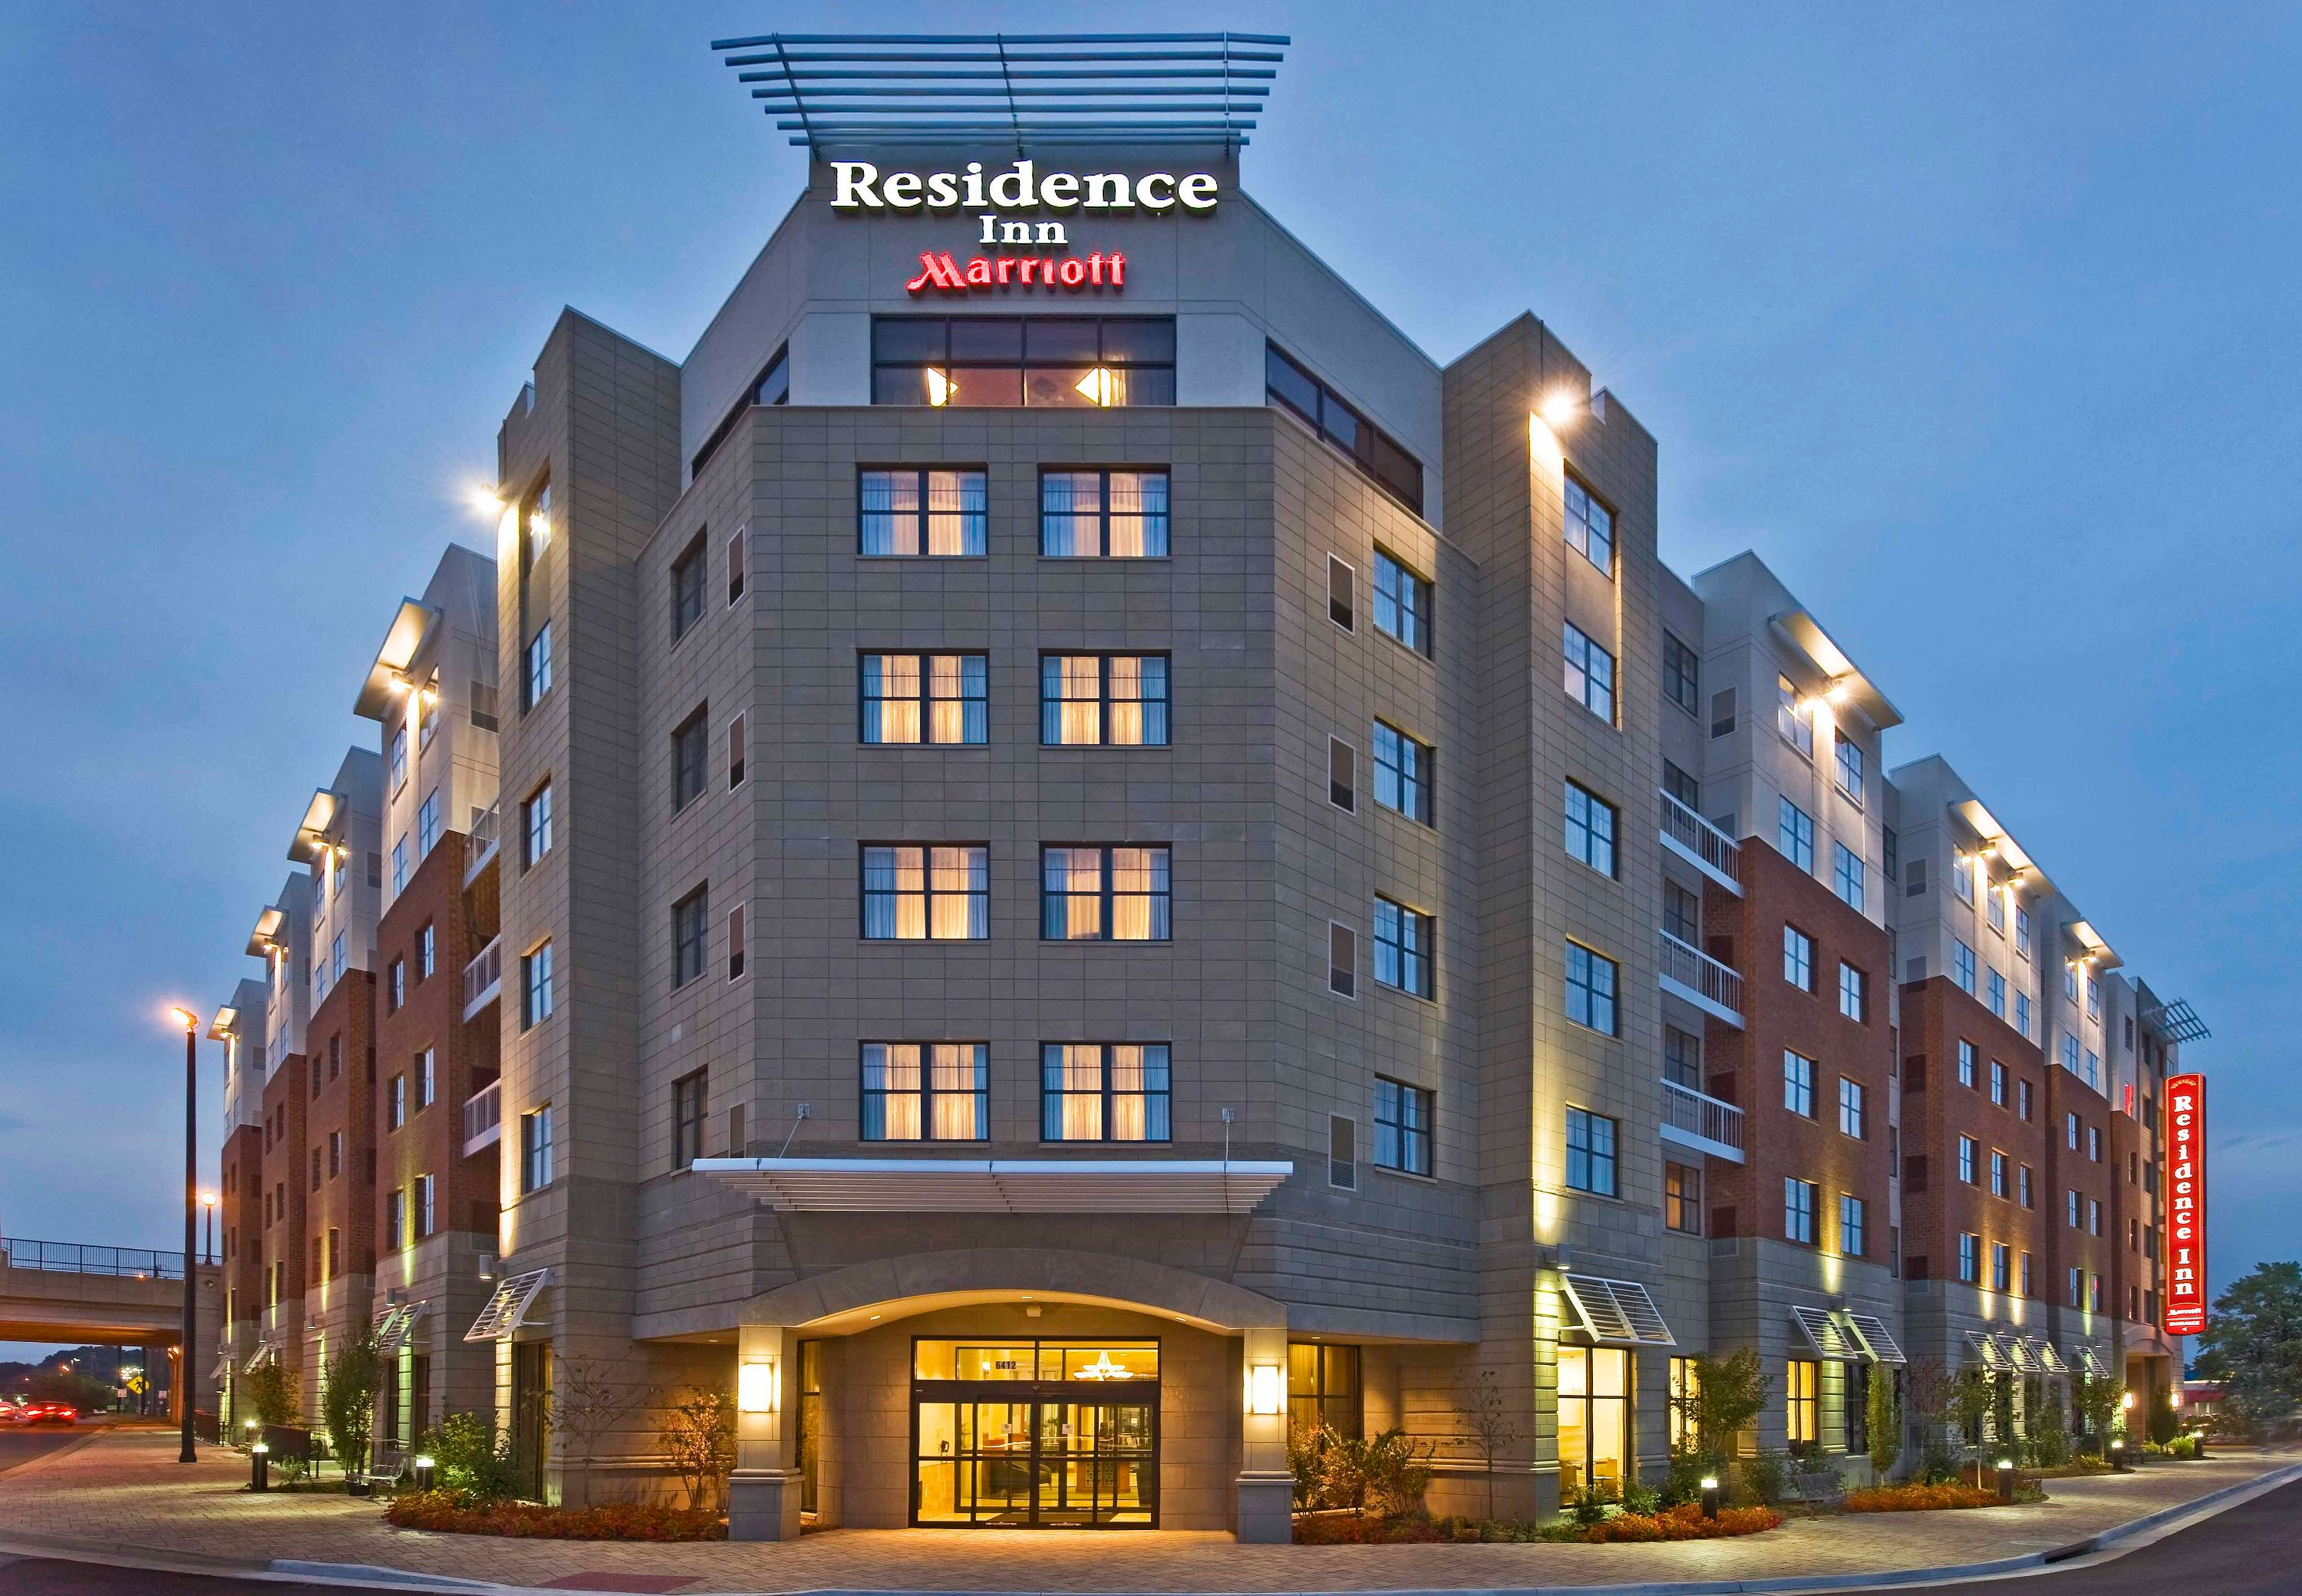 Displayed on this page are Residence Inn by Marriott coupons, coupon codes and special offers. Click on the link to redeem a Residence Inn coupon, promotion or discount. With residence inn by marriott coupon codes, click our link and copy and paste the residence inn coupon code at the merchant's web site to redeem the promo code.